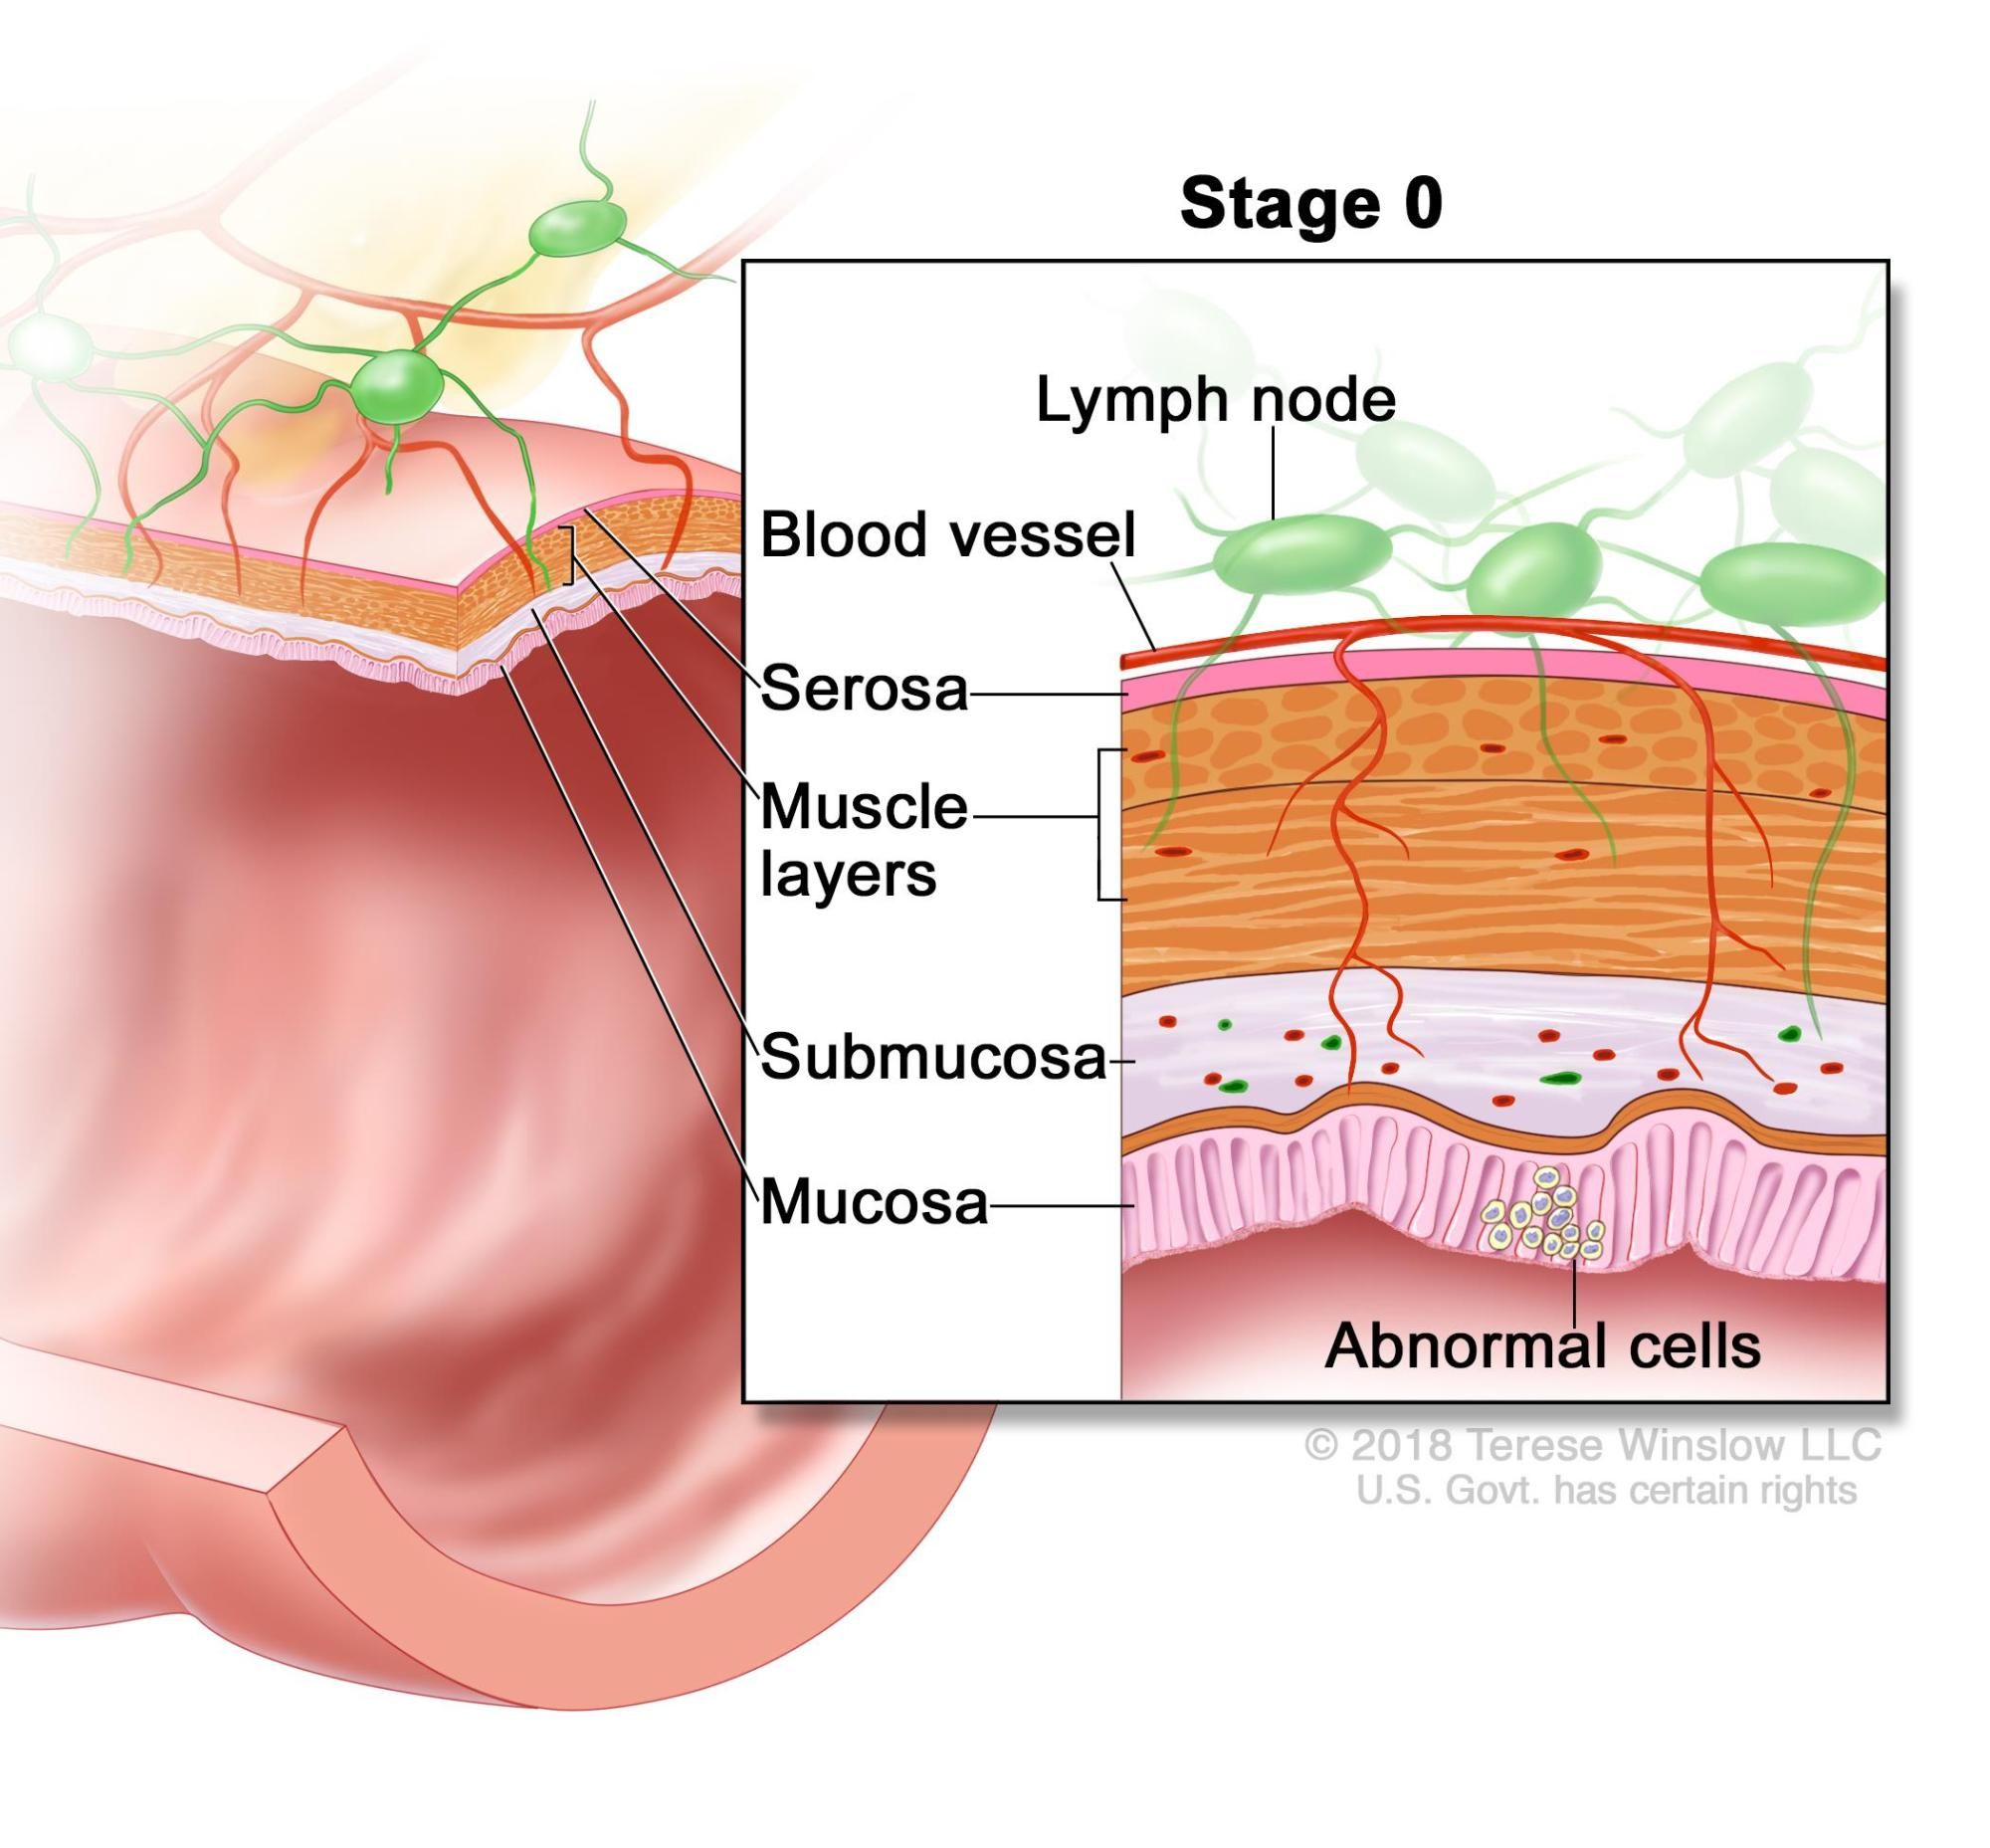 hight resolution of stage 0 colon carcinoma in situ abnormal cells are shown in the mucosa of the colon wall